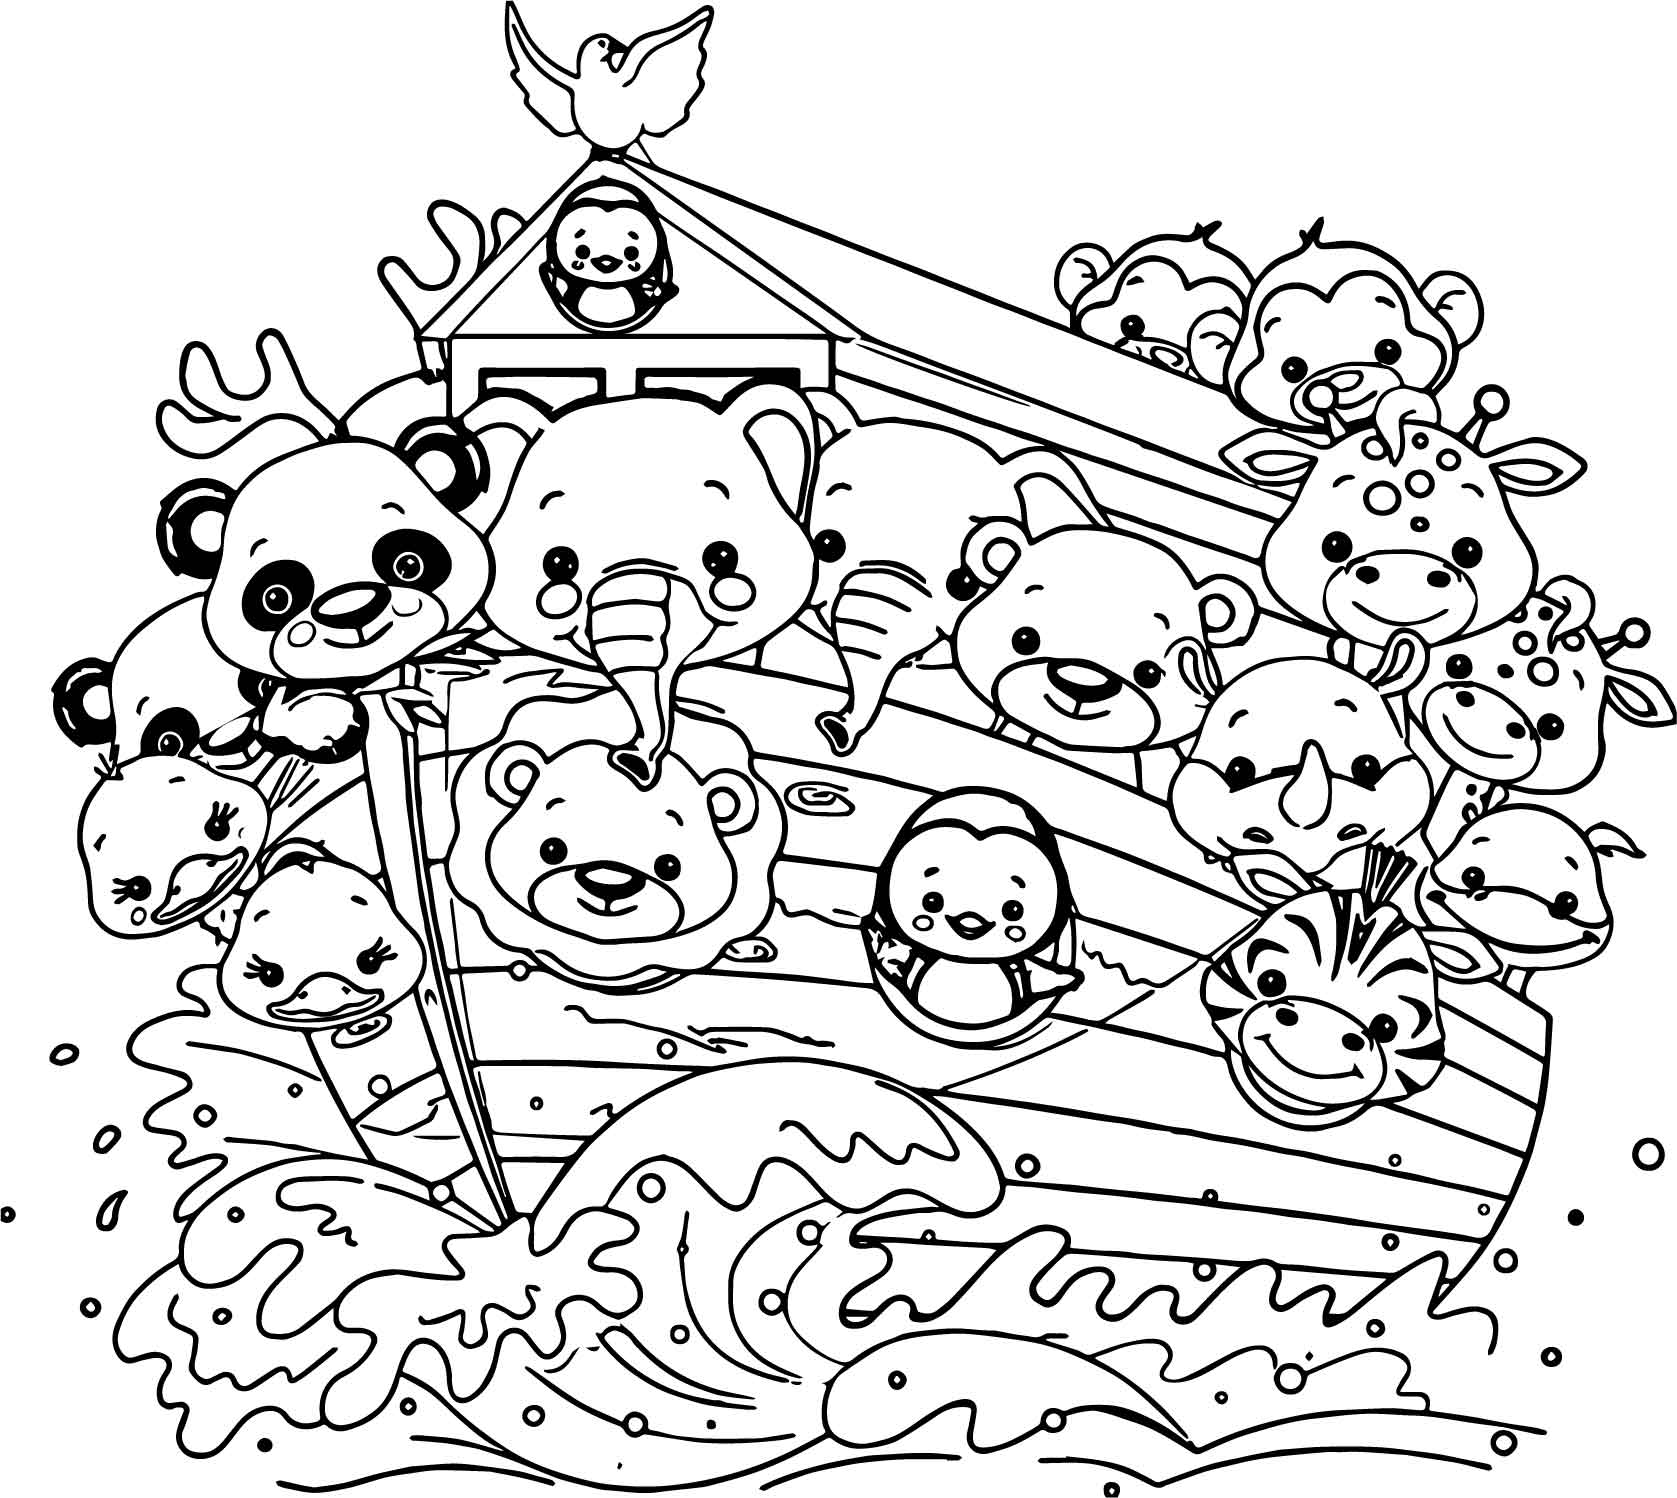 noah ark coloring page noah ship cartoon coloring page